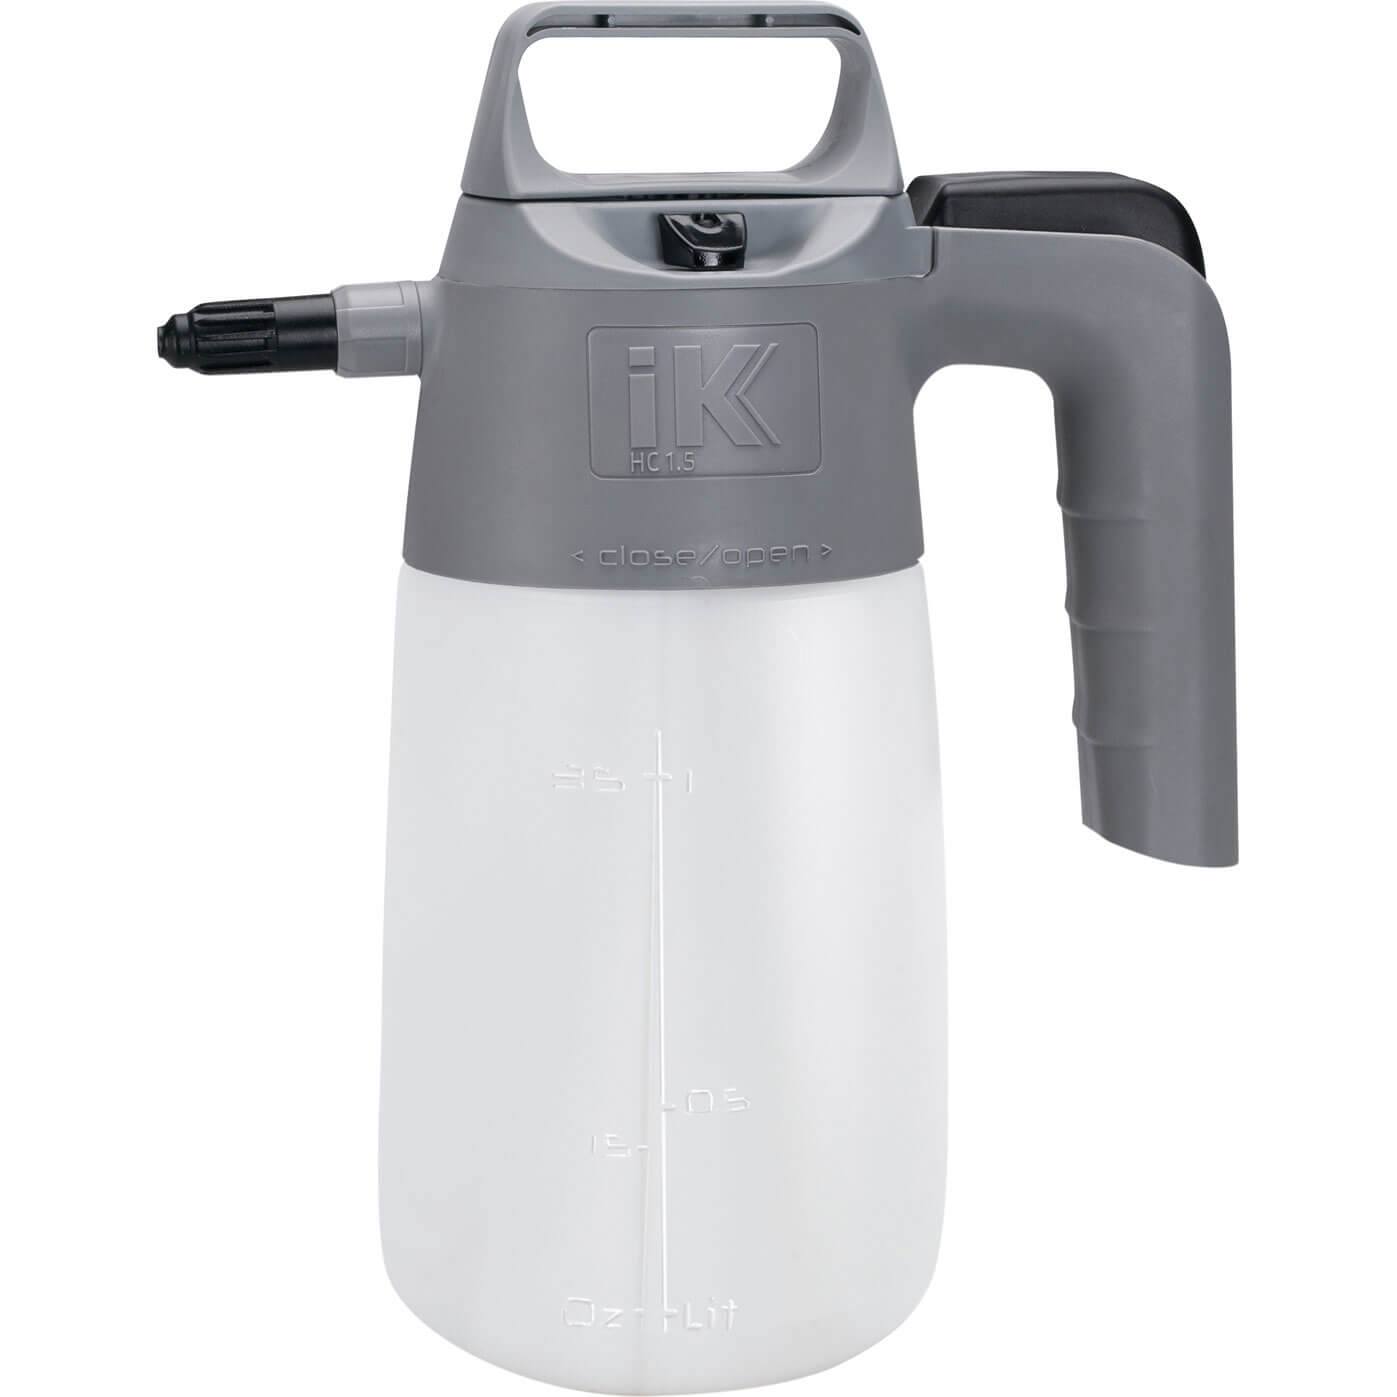 Image of Matabi IK HC 1.5 Water Sprayer 1.5l